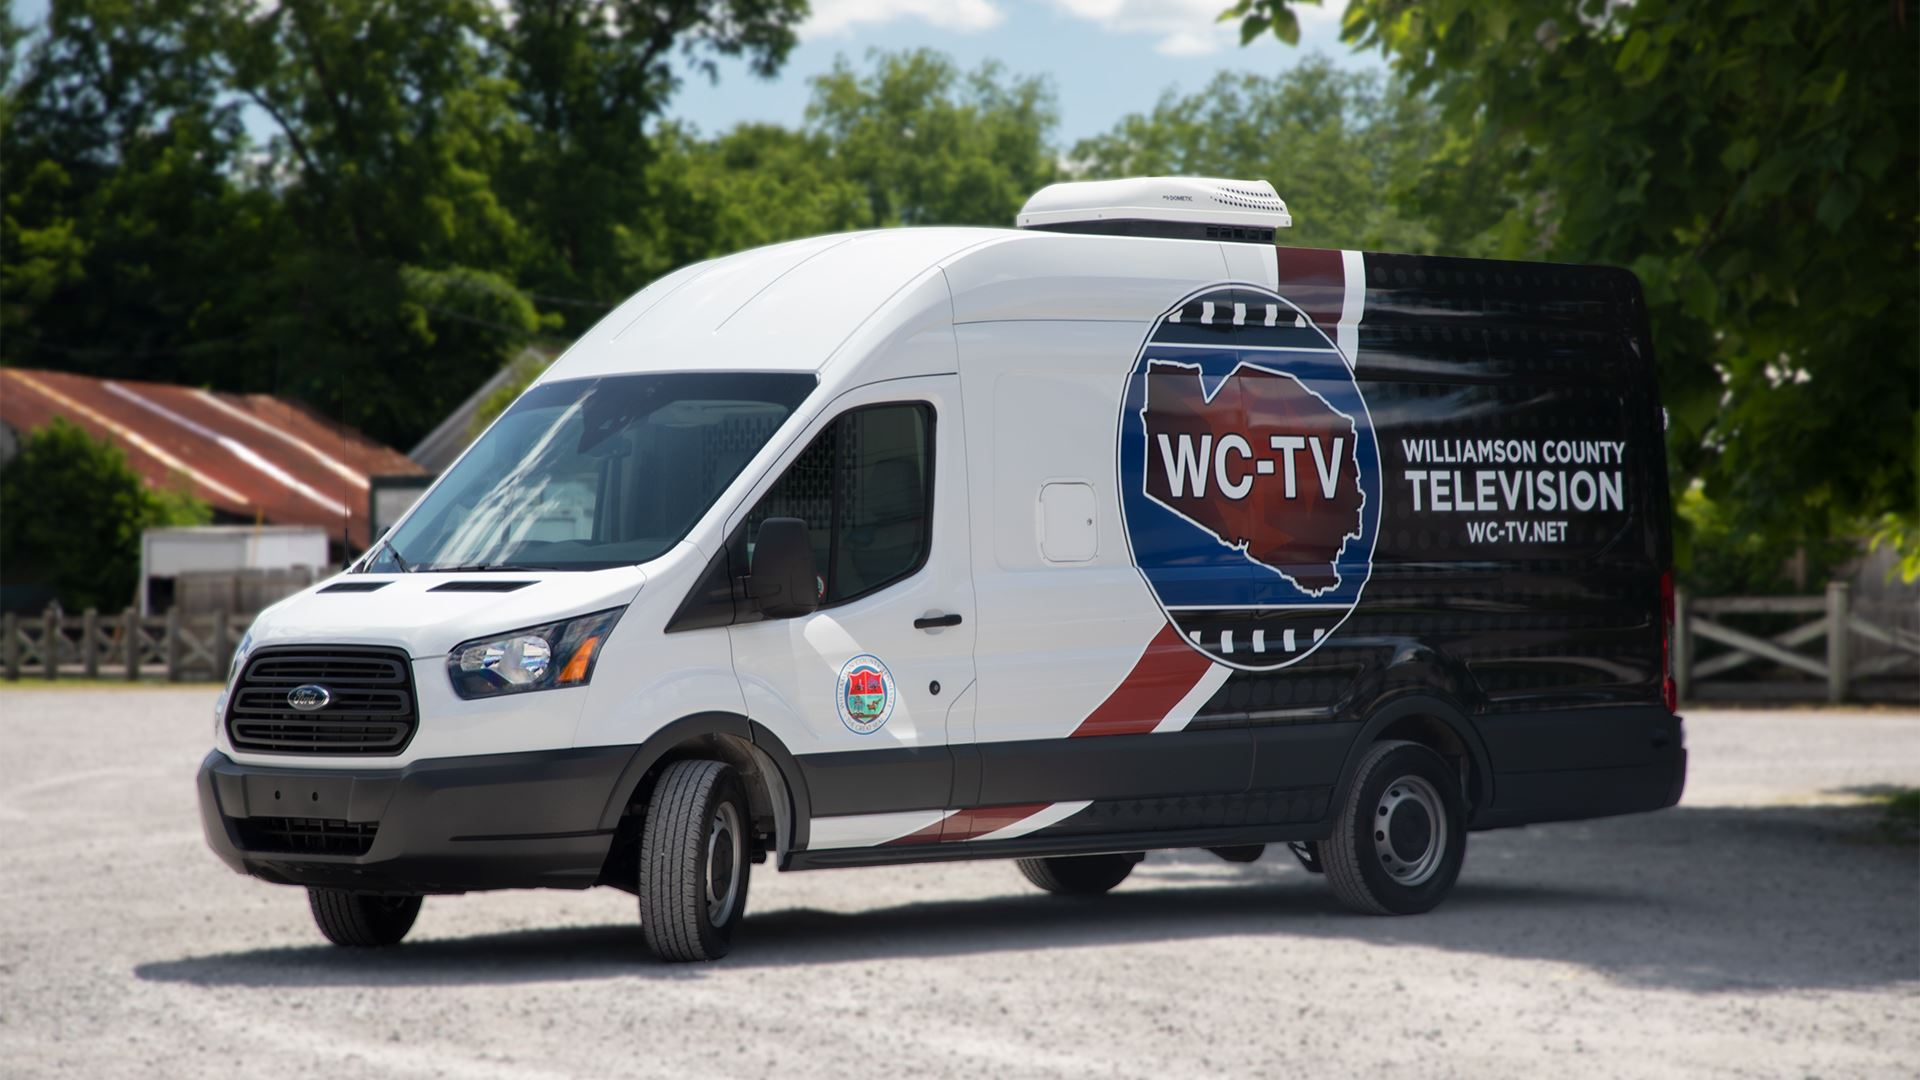 A scenic view of the WC-TV Production Van